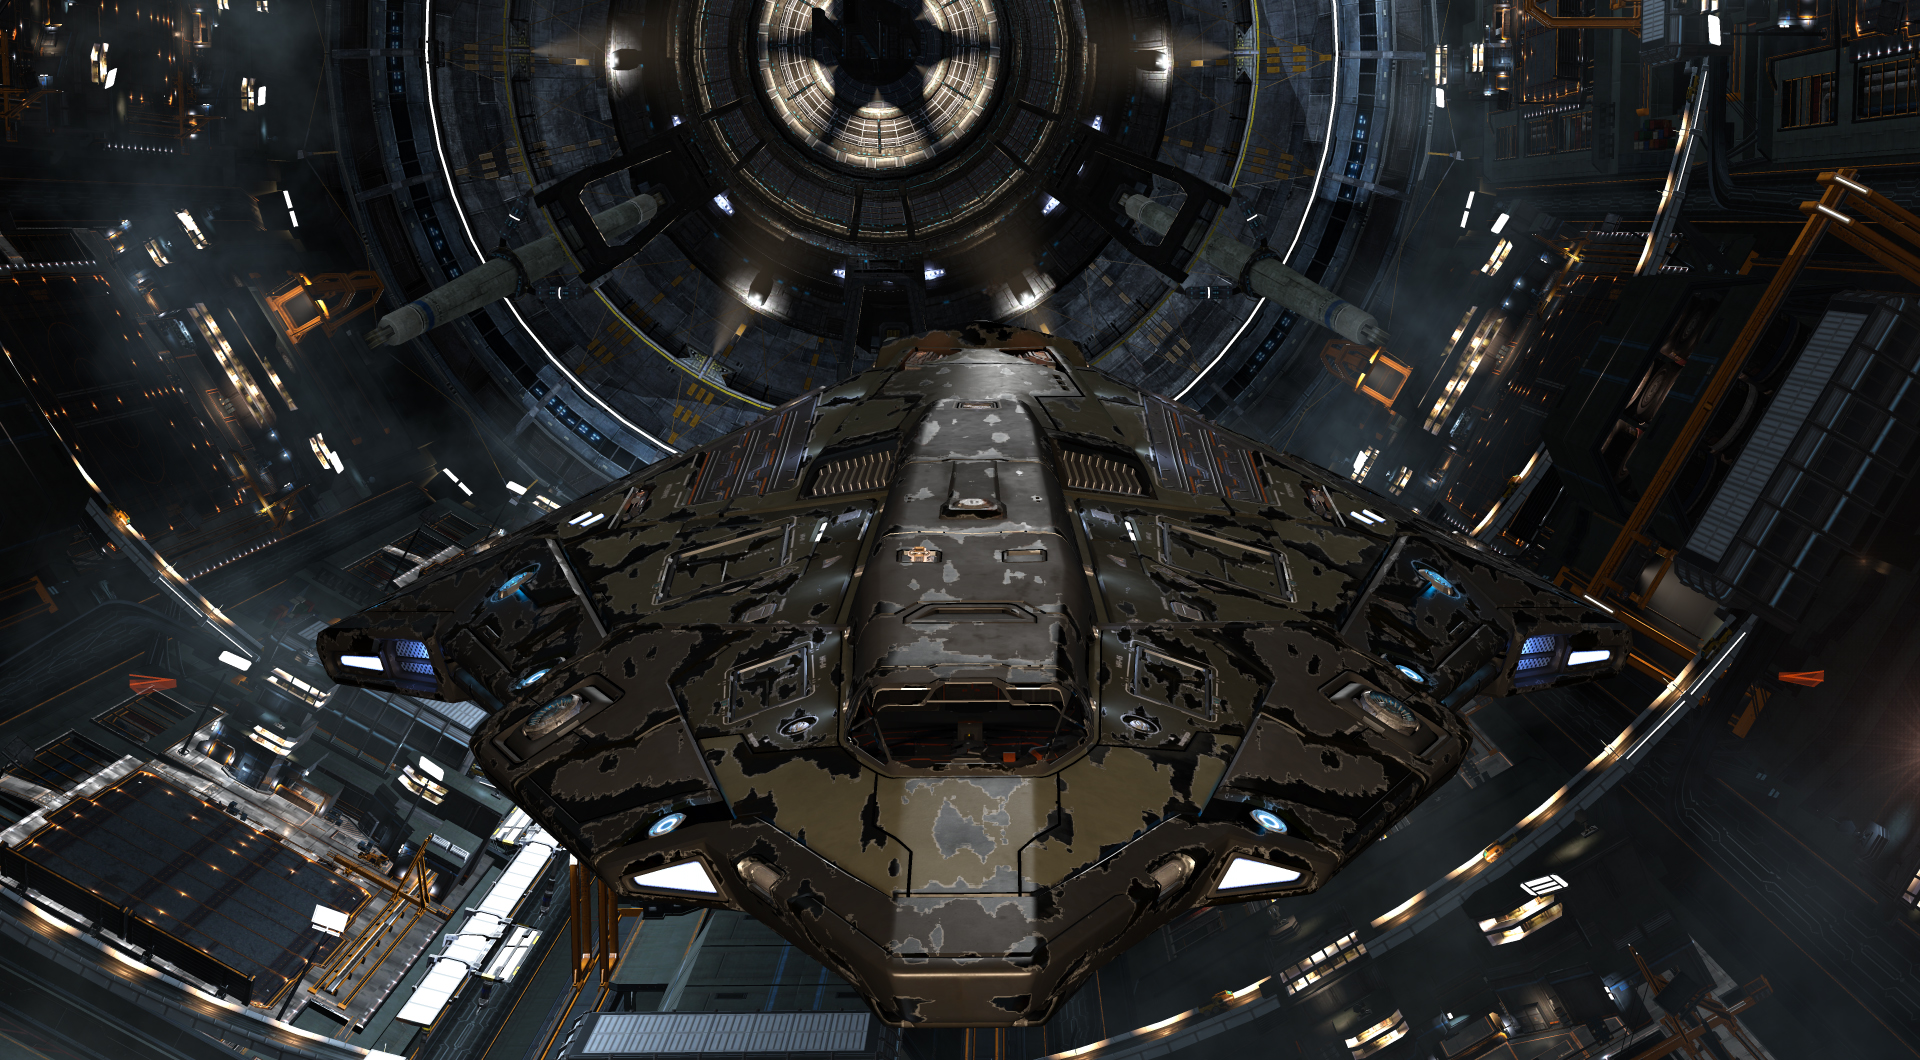 Whatever happened to old rusty ships? : EliteDangerous